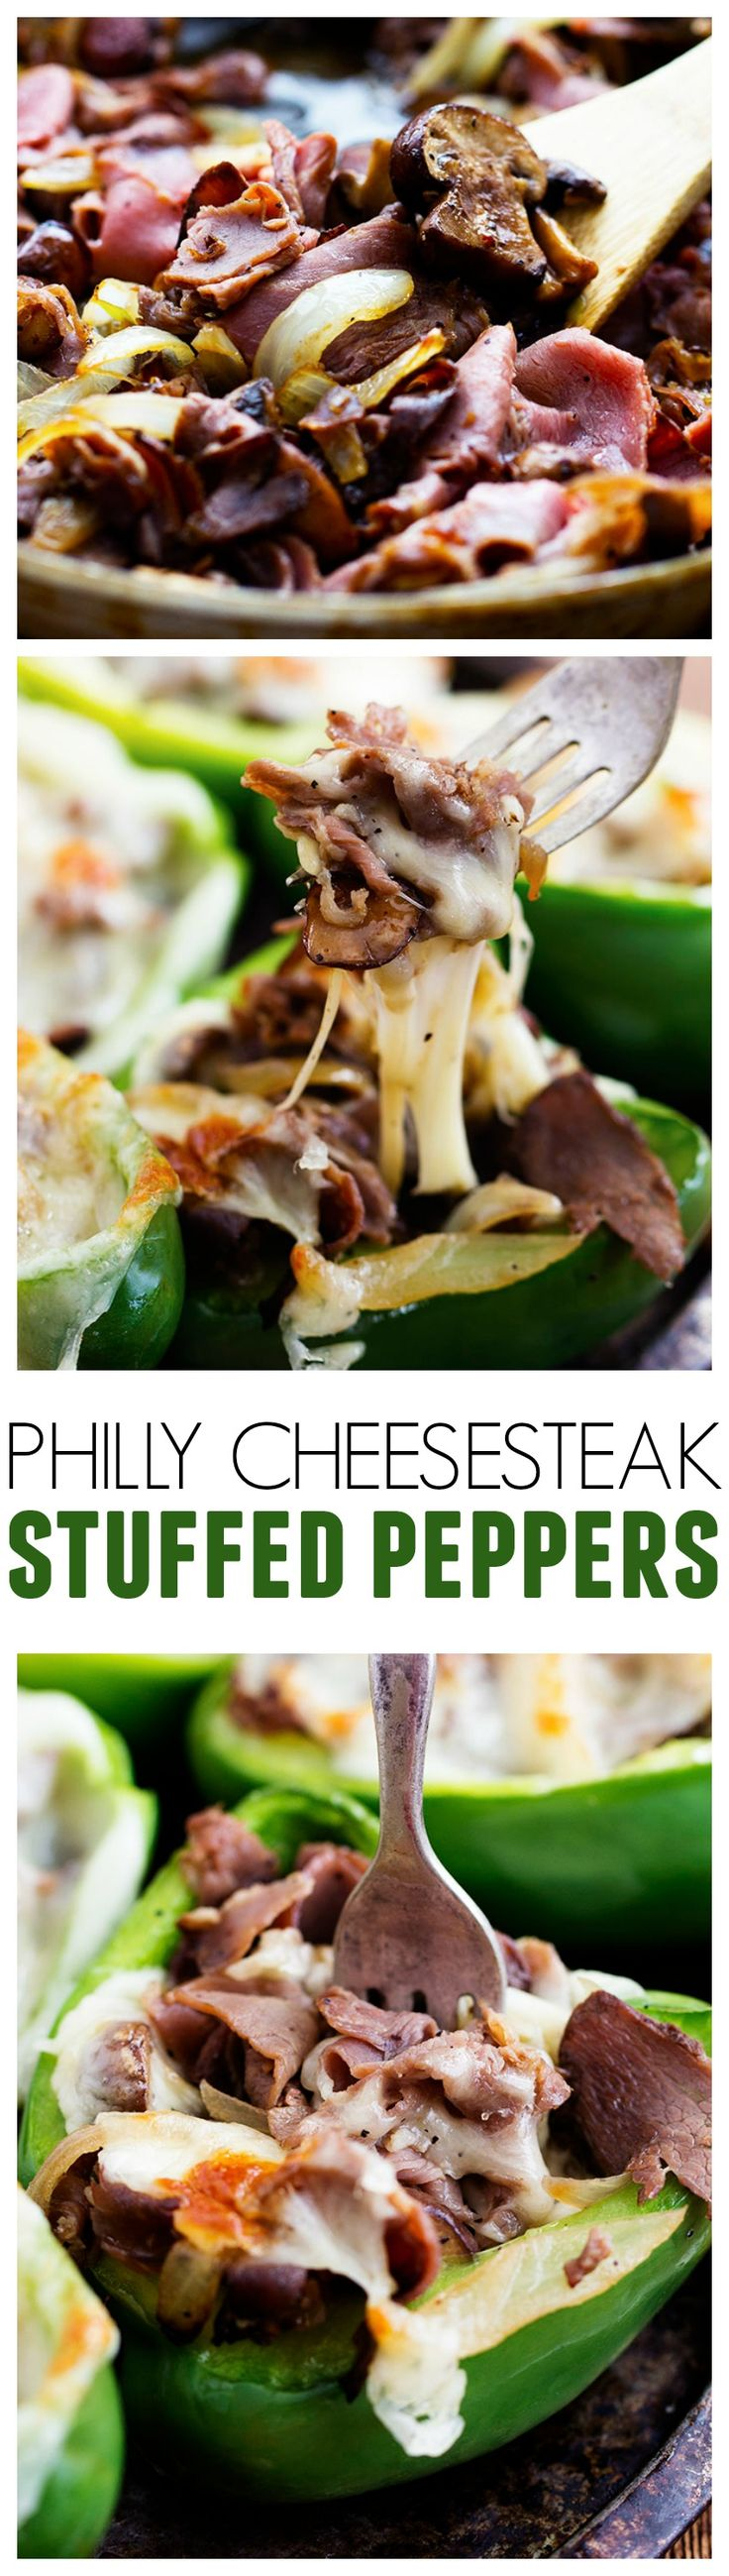 This Philly Cheesesteak Stuffed Peppers are loaded with beef, caramelized onions, mushrooms and ooey gooey cheese! These are out of this world!